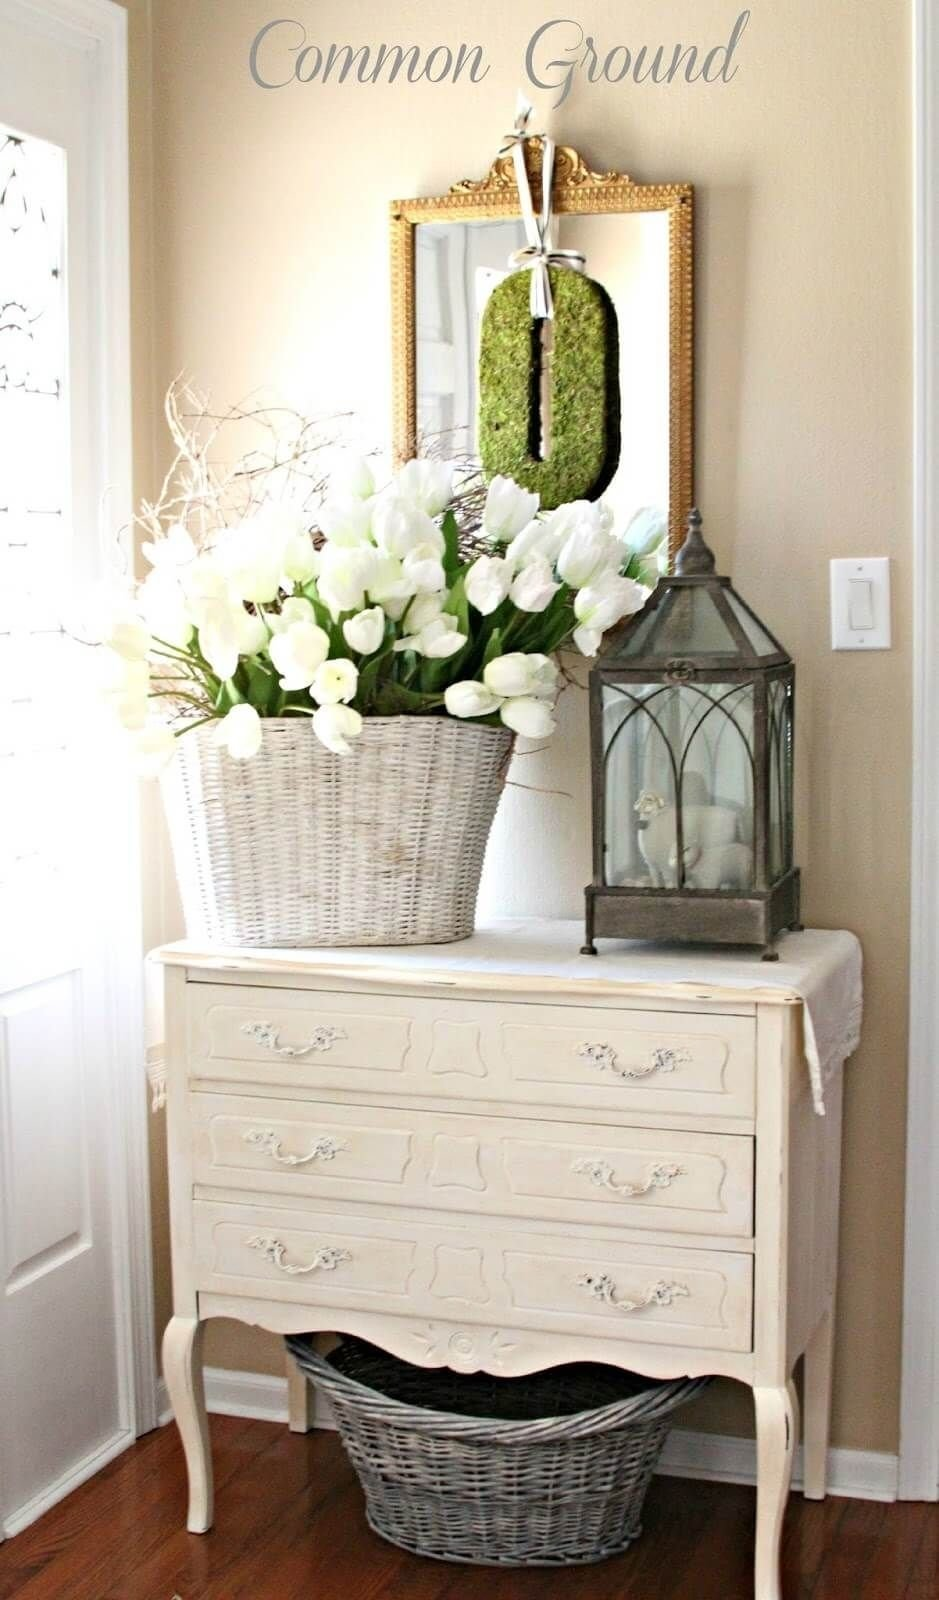 10 Pretty French Country Cottage Decorating Ideas 35 charming french country decor ideas with timeless appeal 2020